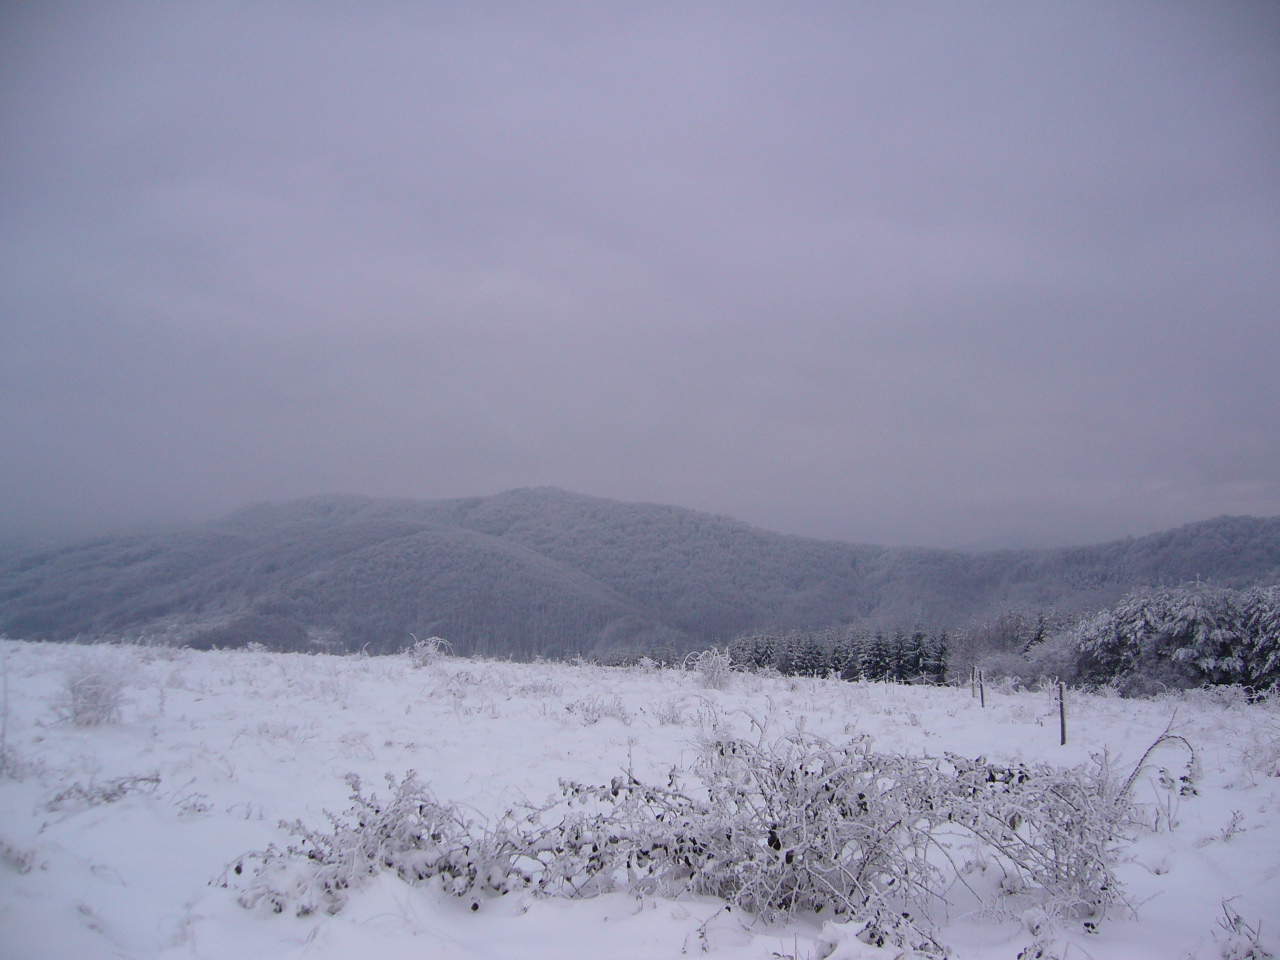 A PERSPECTIVE PIECE OF LAND 2800sq m FOR SALE 8km FROM GABROVO 500m FROM HOTEL